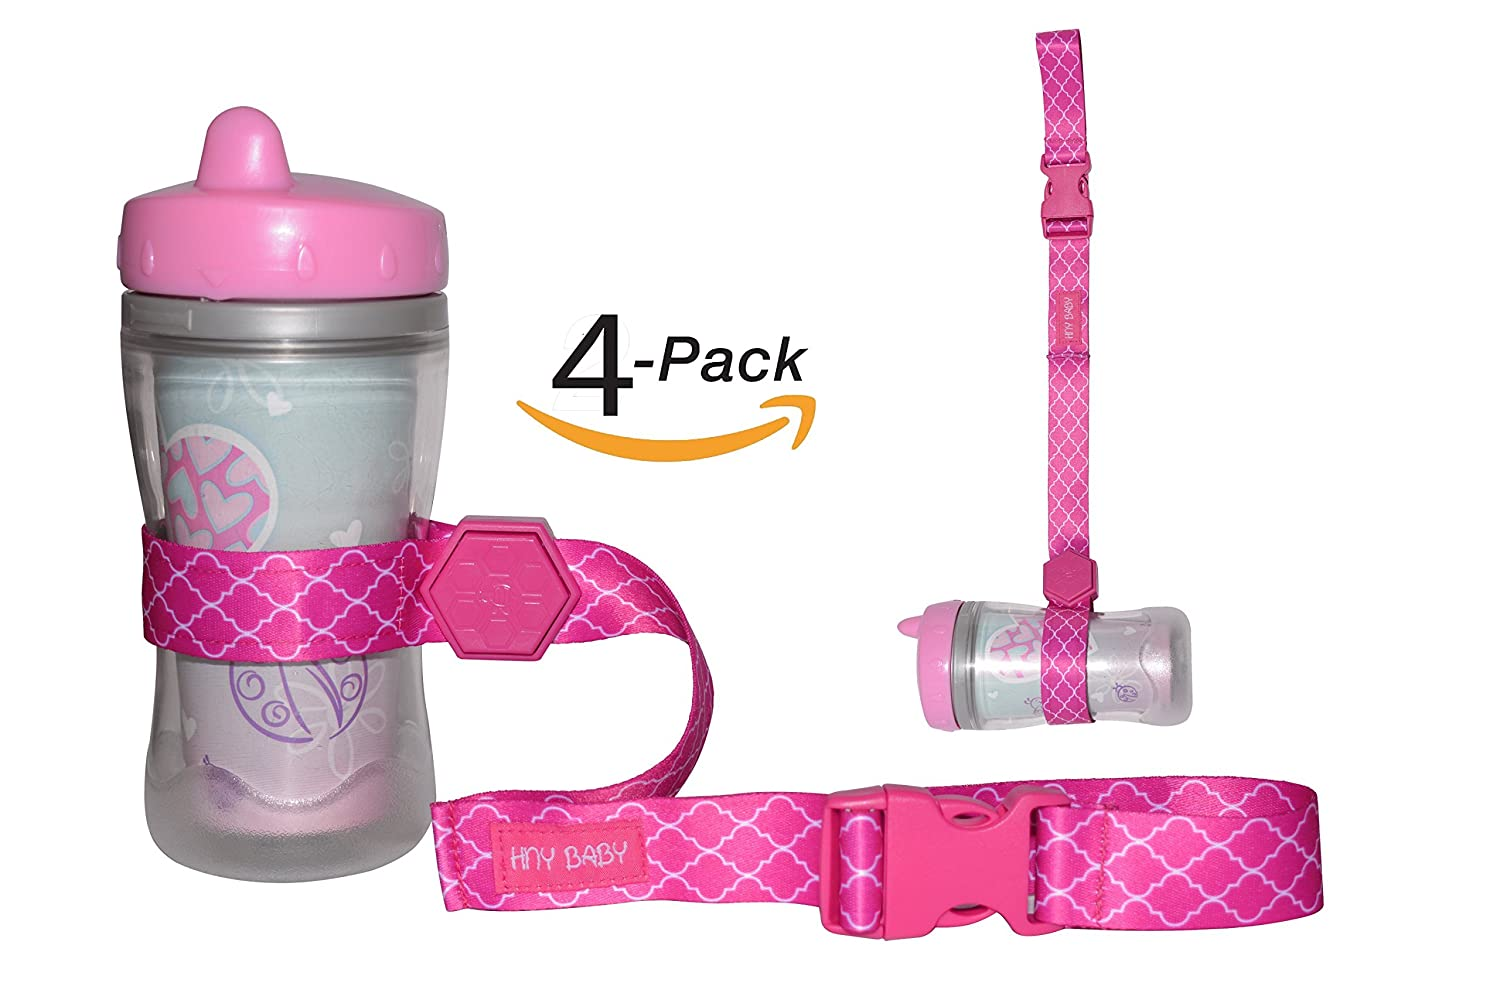 HnyBaby Sippy Cup Straps (4-Pack) Toddler Drink and Baby Bottles Holders and Toy Clips | One-Button Adjustable, Non-Slip Grip | Stroller, High Chair, Travel Use